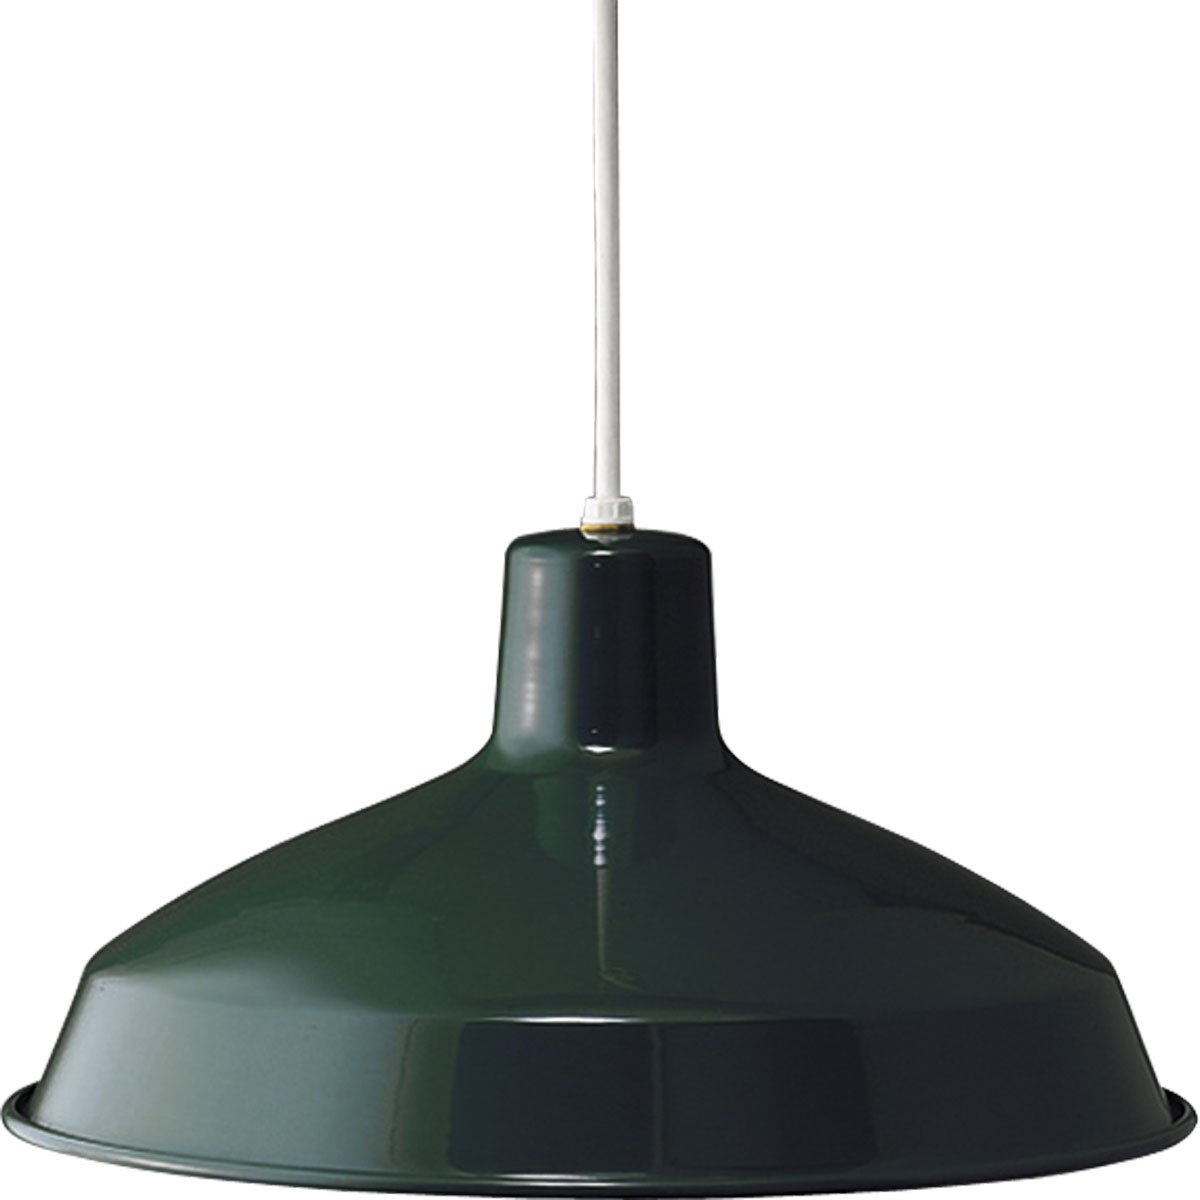 Progress lighting p5094 45 1 light cord hung pendant with white progress lighting p5094 45 1 light cord hung pendant with white interlined shade dark green ceiling pendant fixtures amazon arubaitofo Images